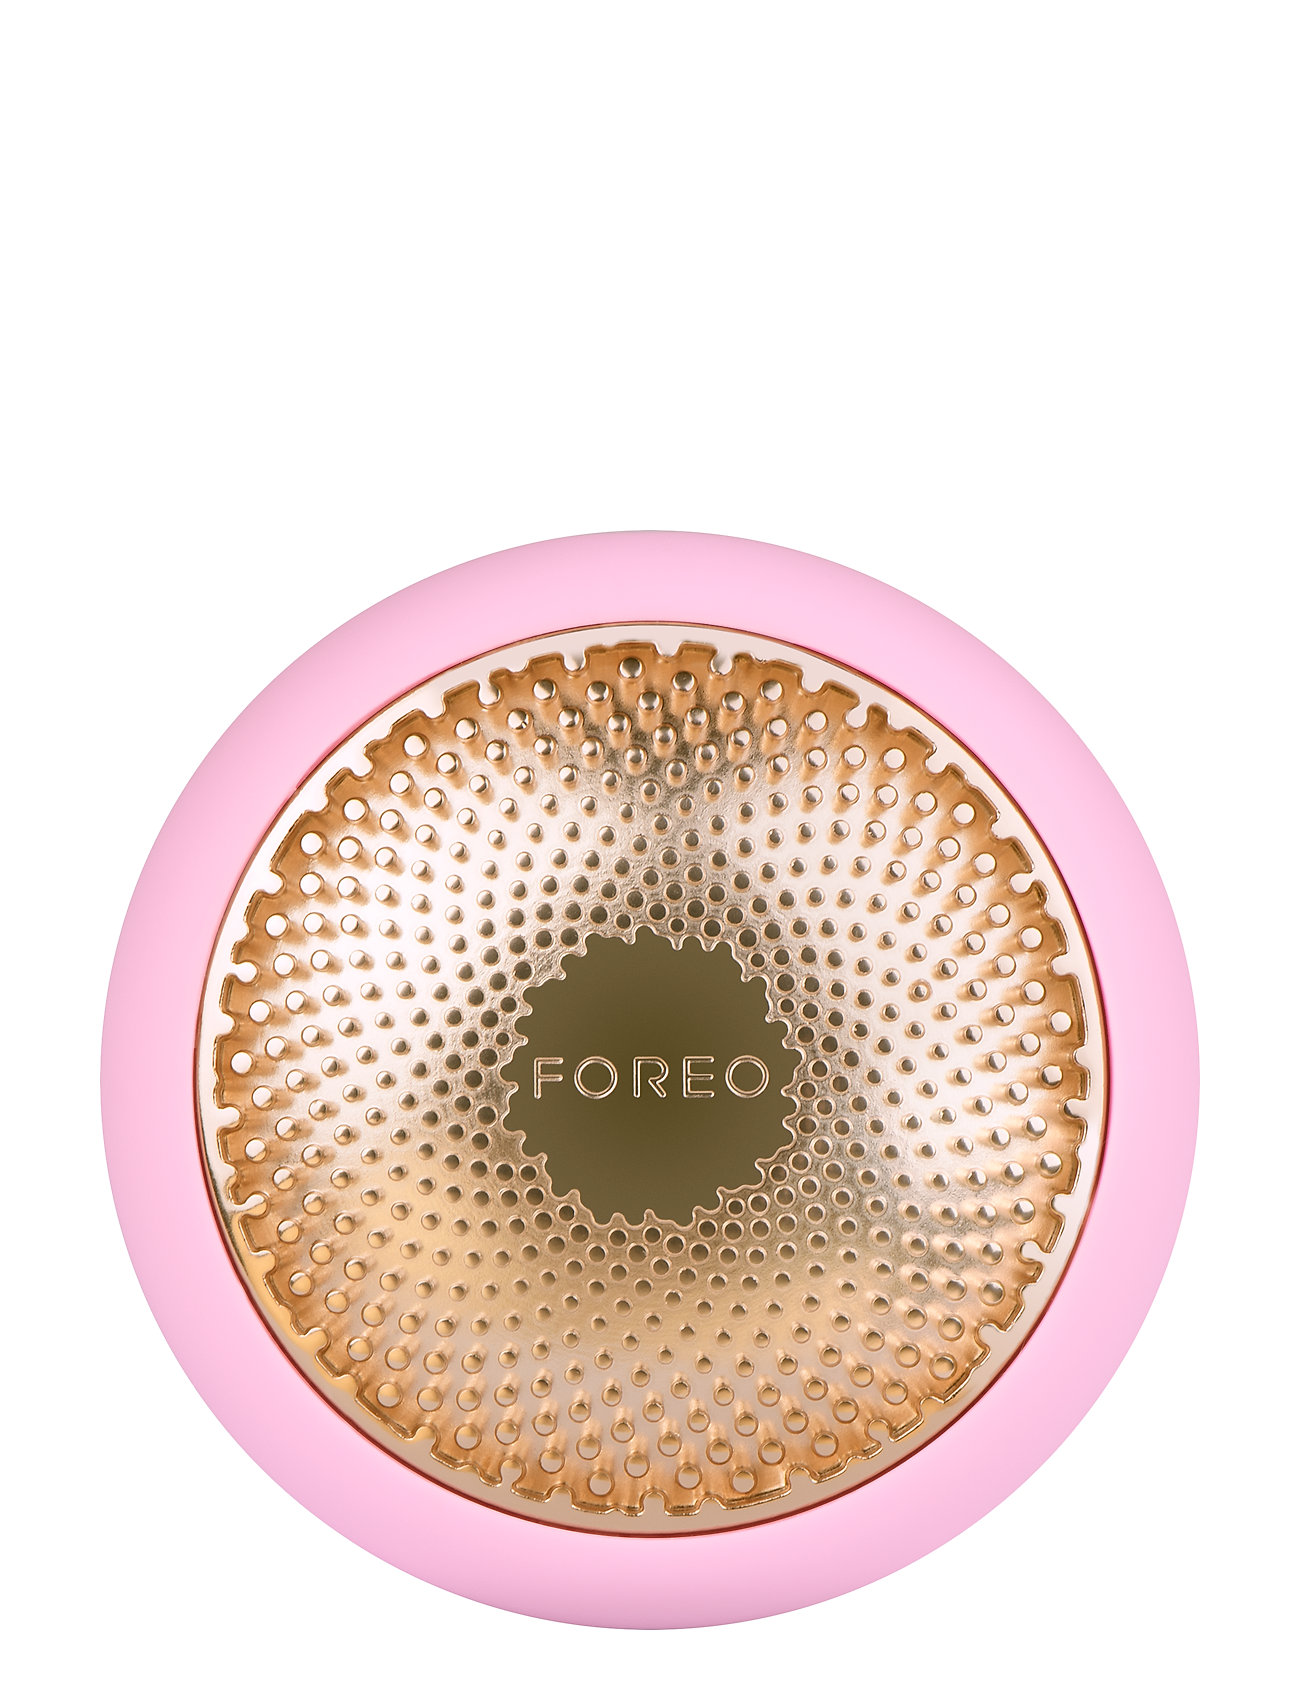 Image of Ufo - Pearl Pink Beauty WOMEN Skin Care Face Face Masks Lyserød Foreo (3421361513)